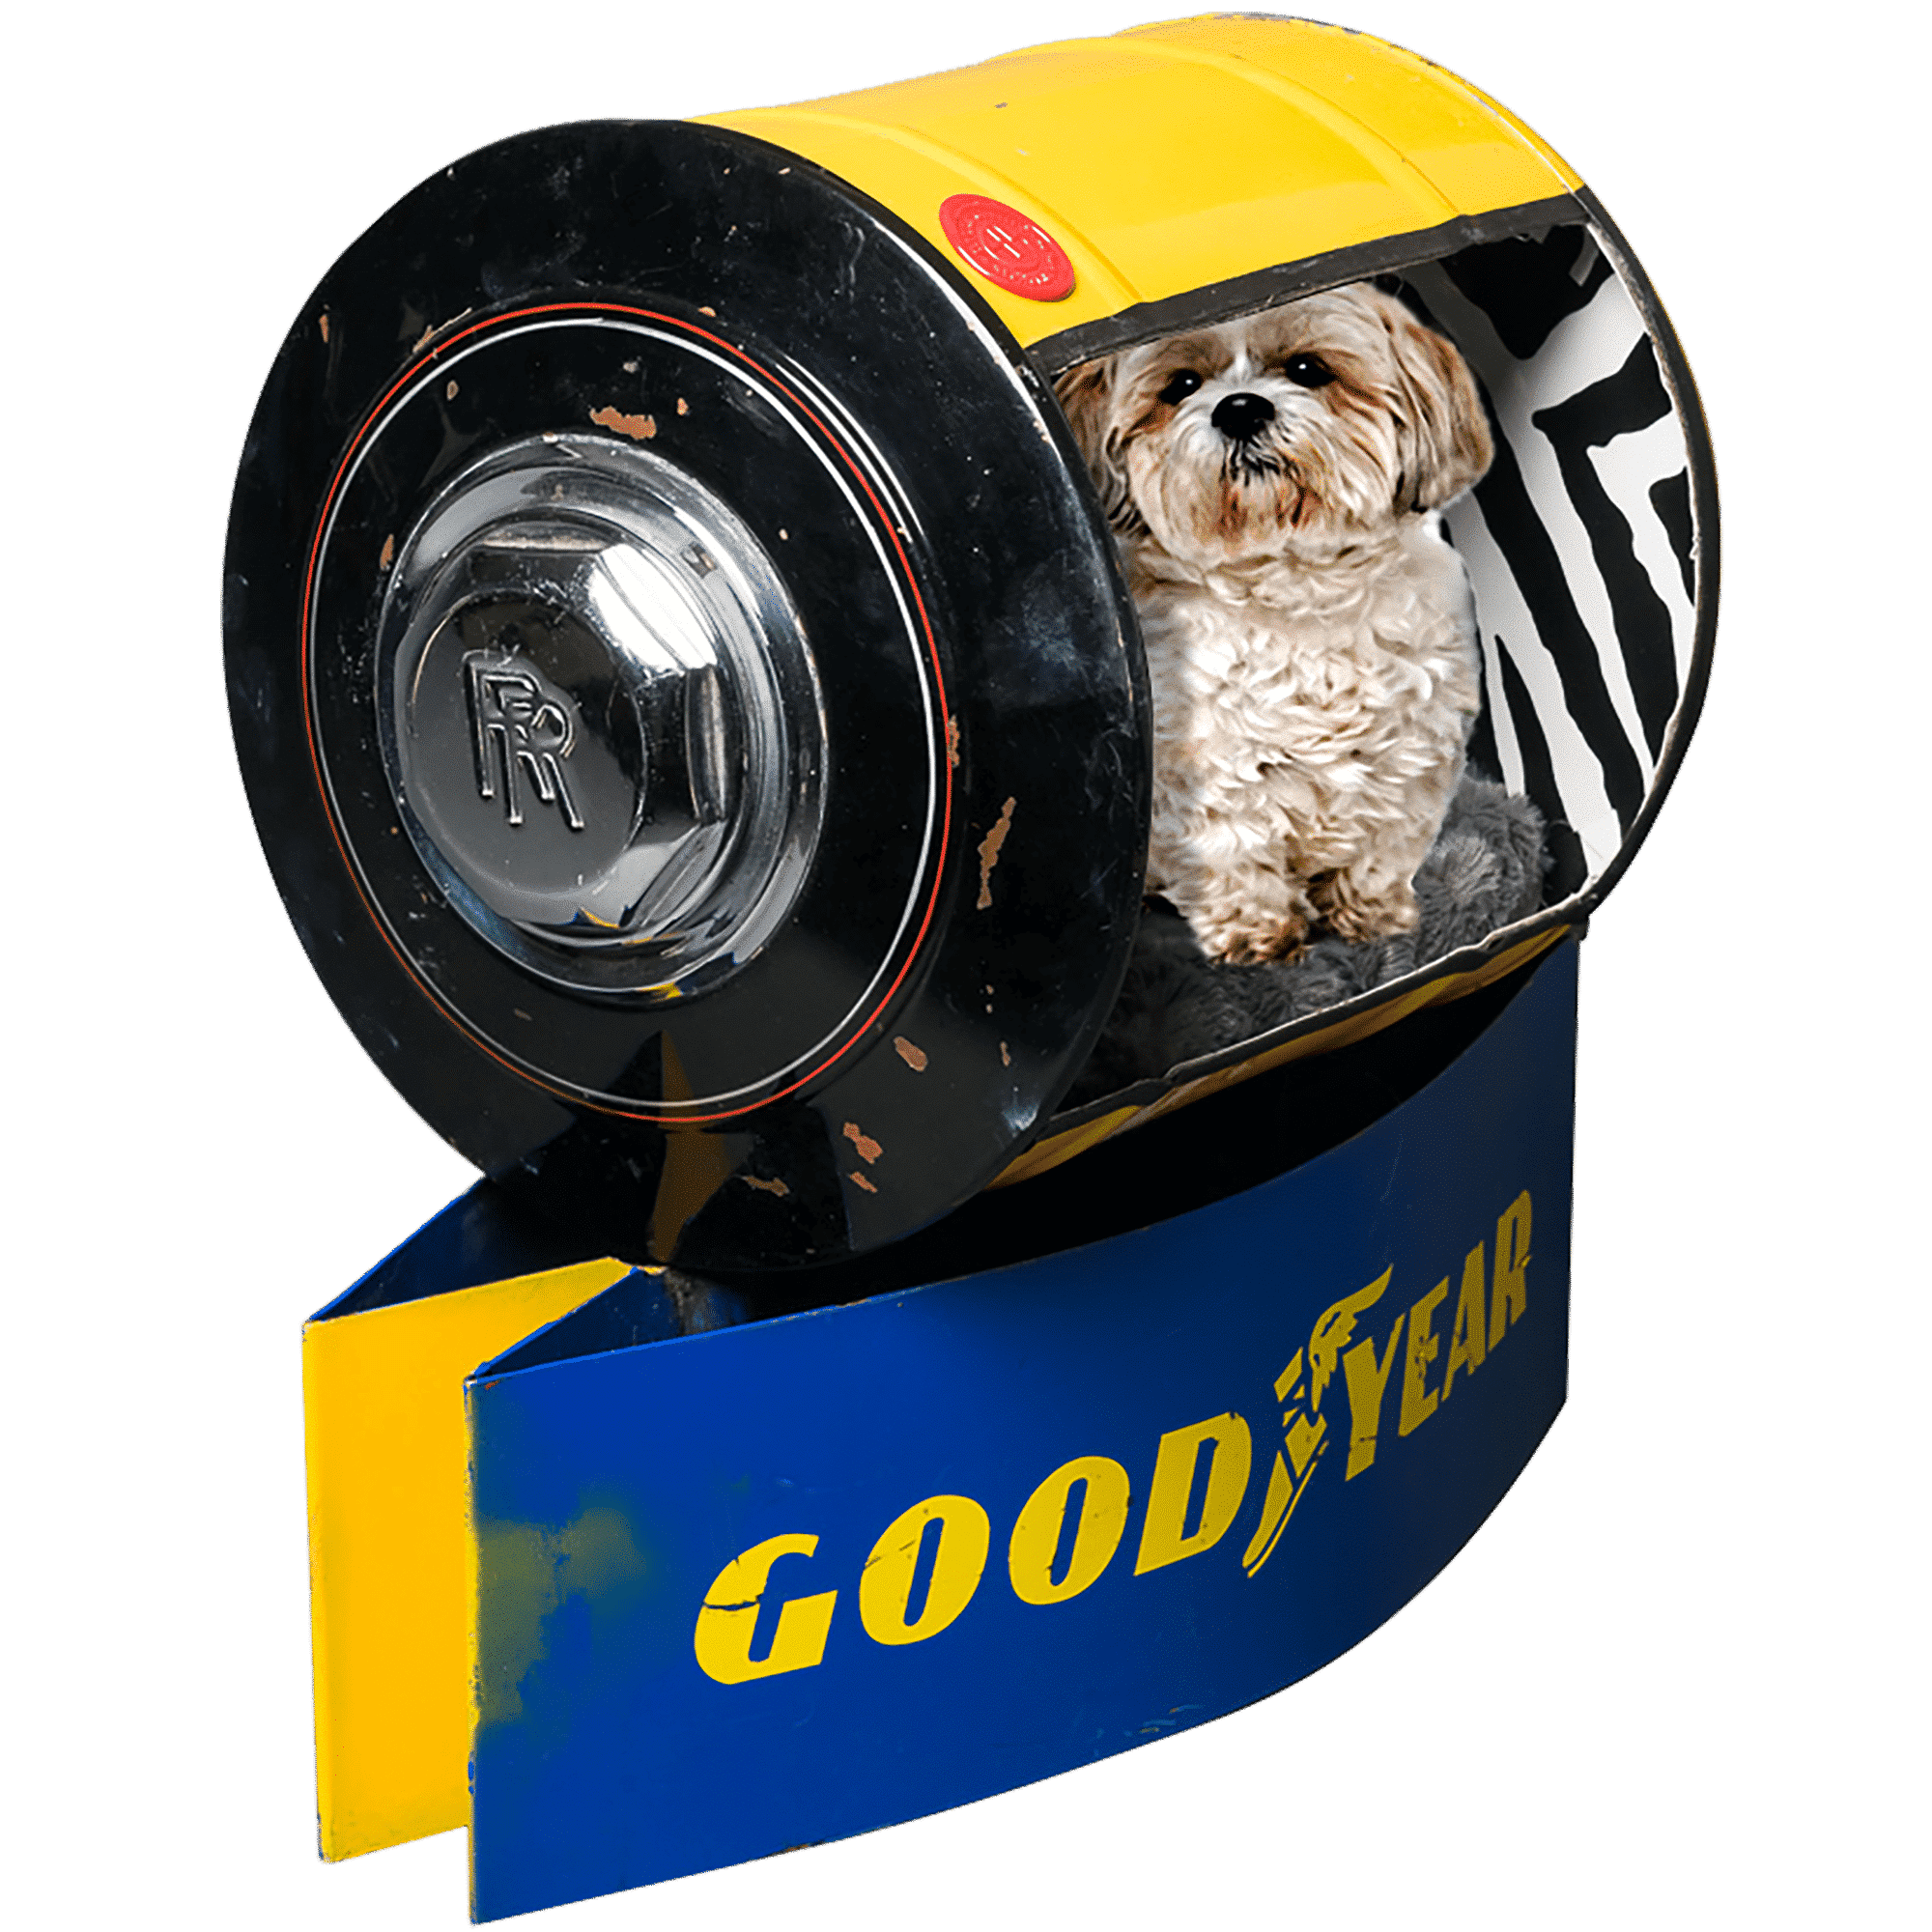 Decoration garage parts Rolls Royce / Goodyear Pets